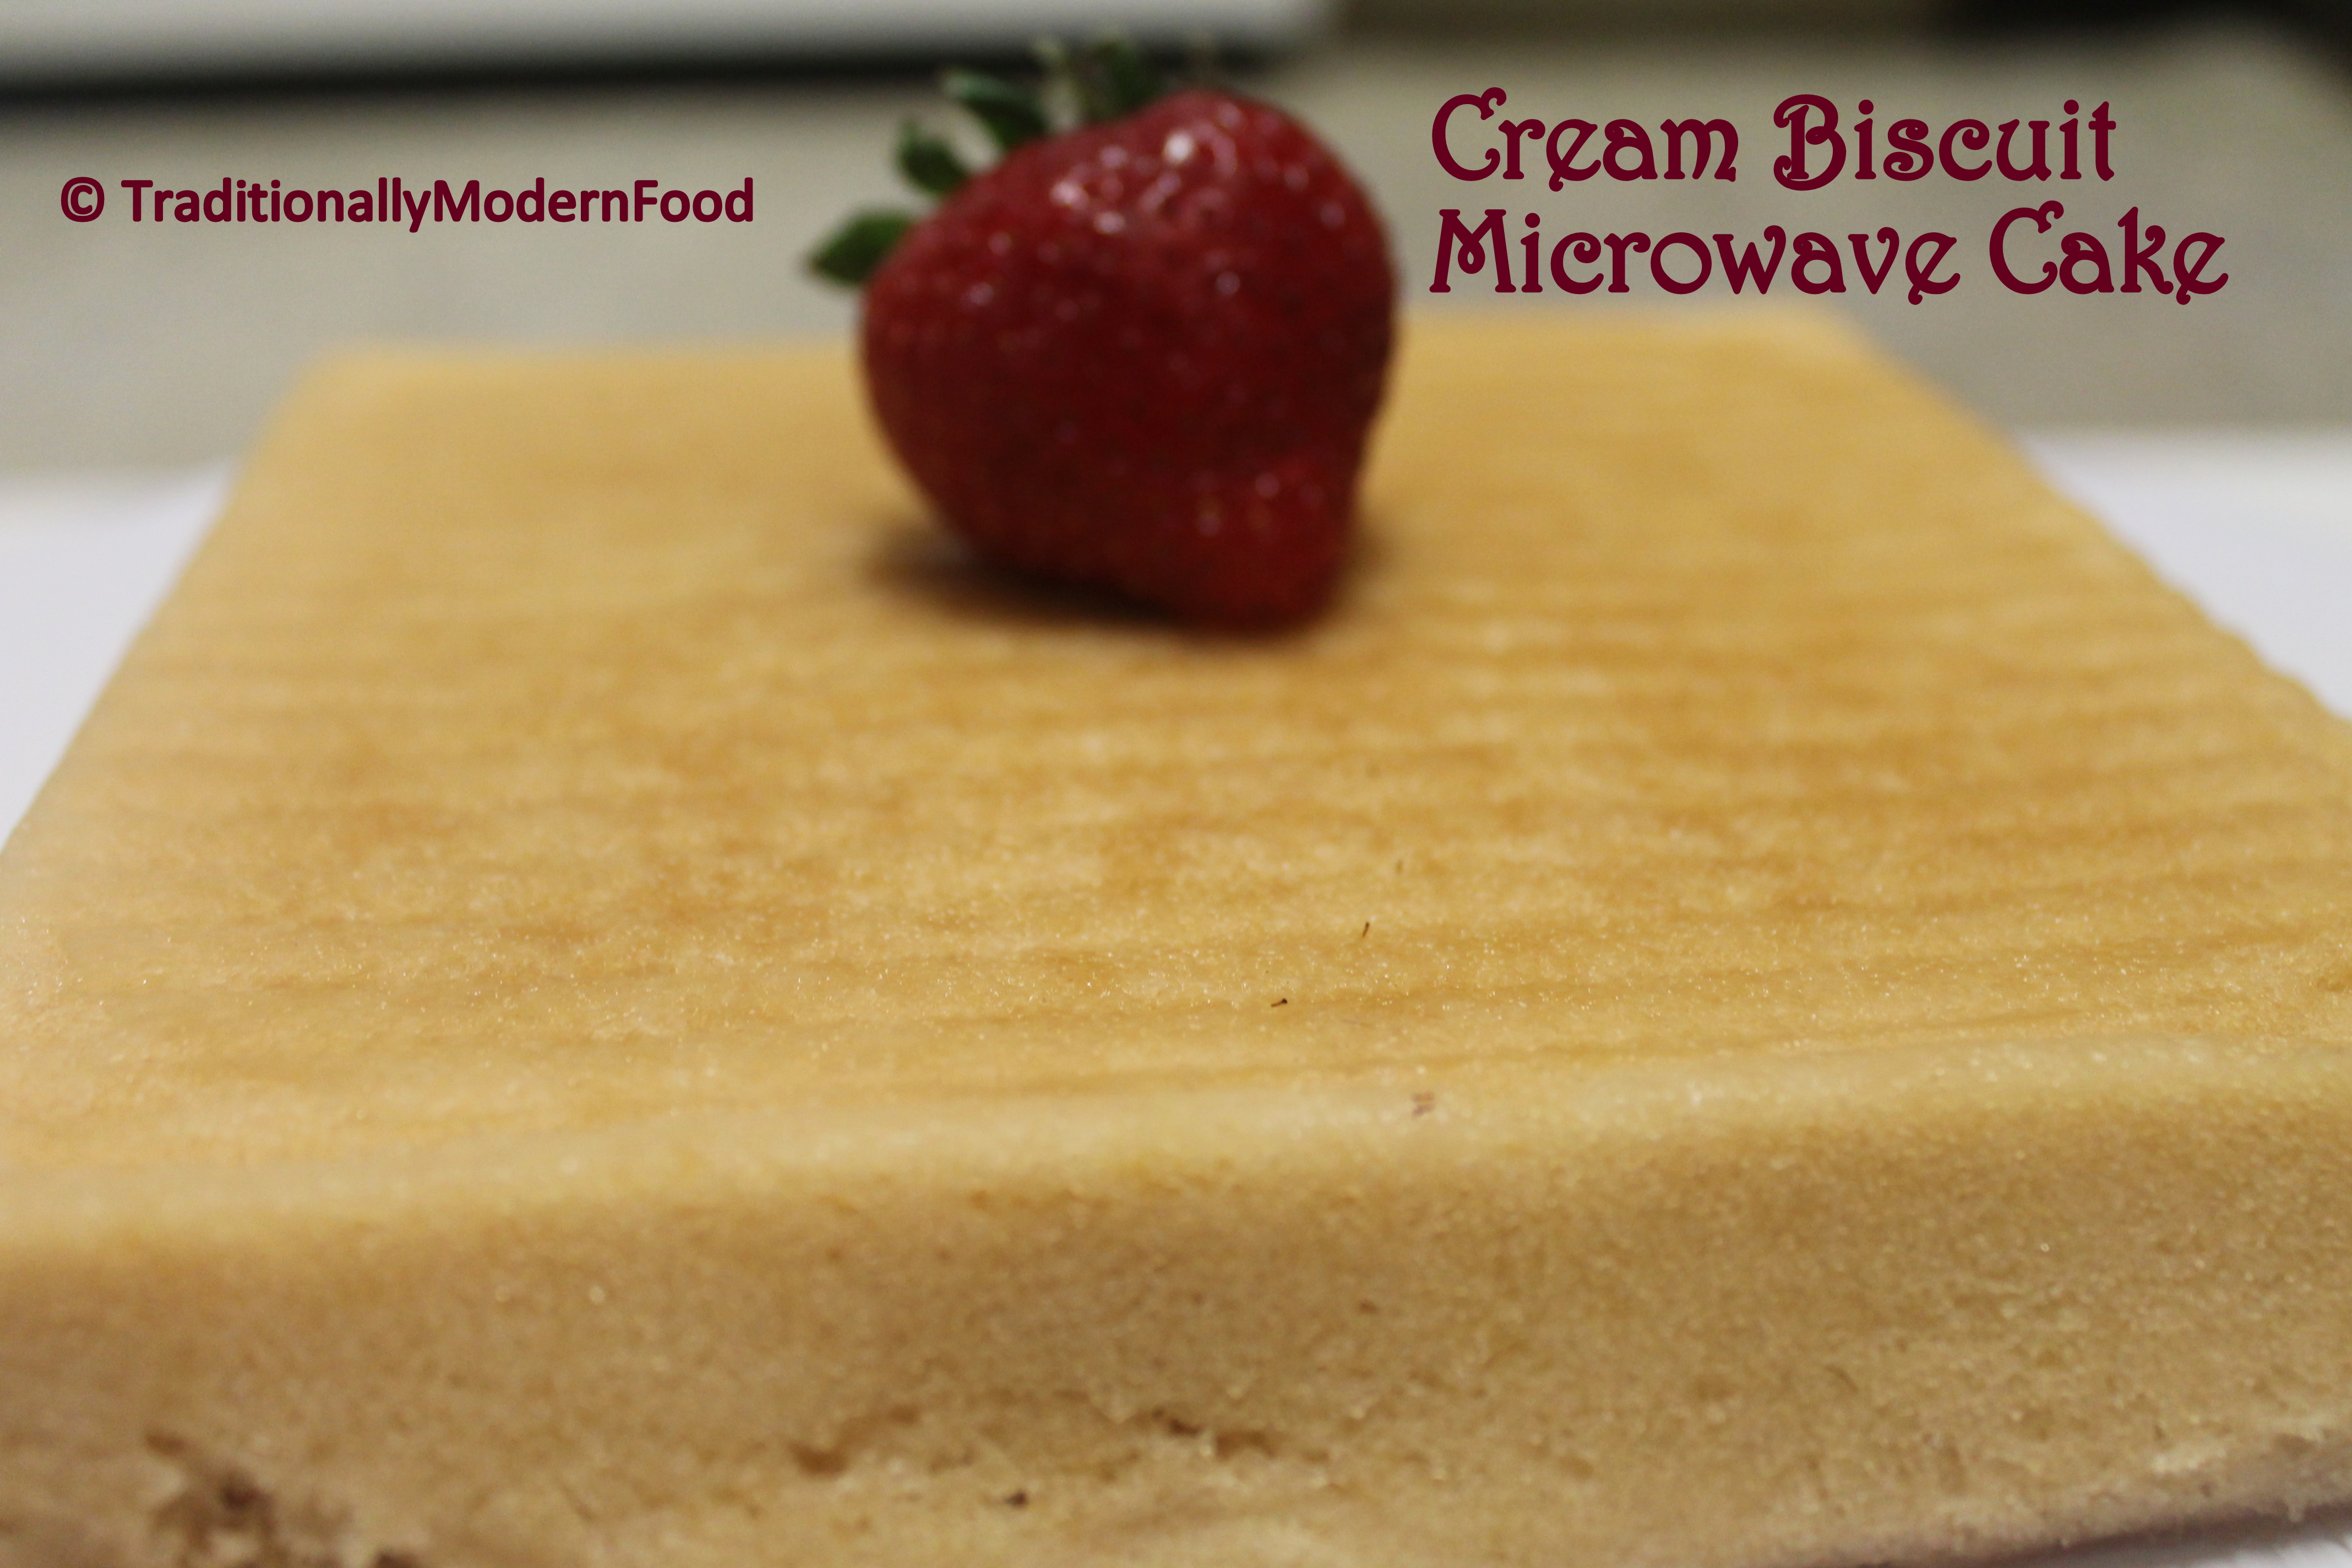 Cream Biscuit Microwave Cake | Traditionally Modern Food